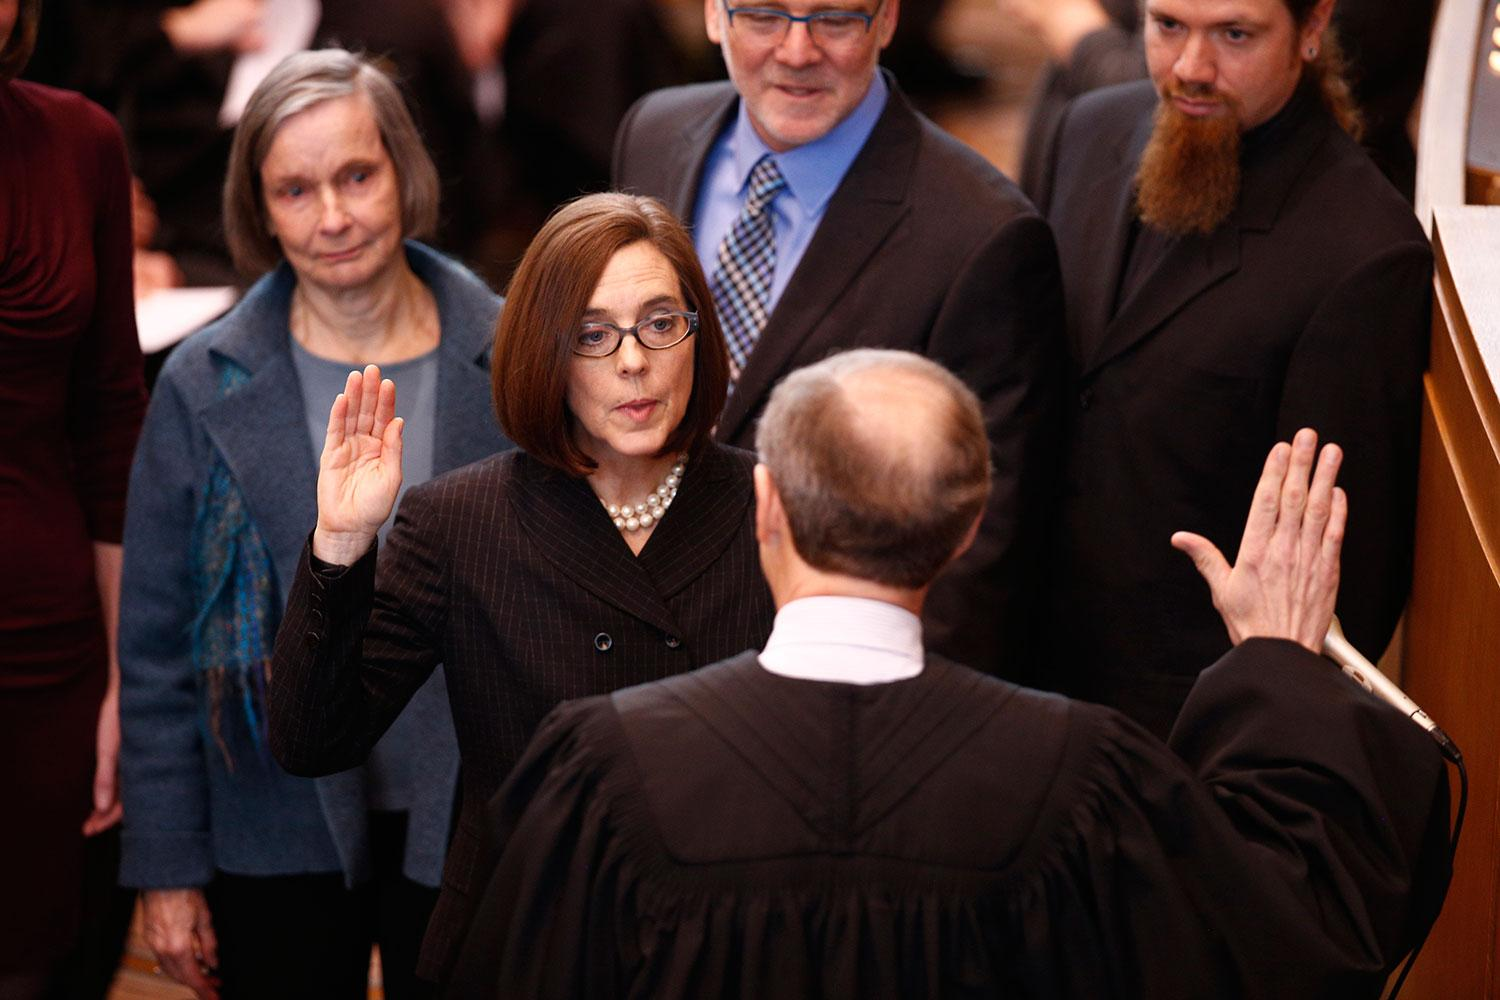 Kate Brown being sworn in as Governor or Oregon